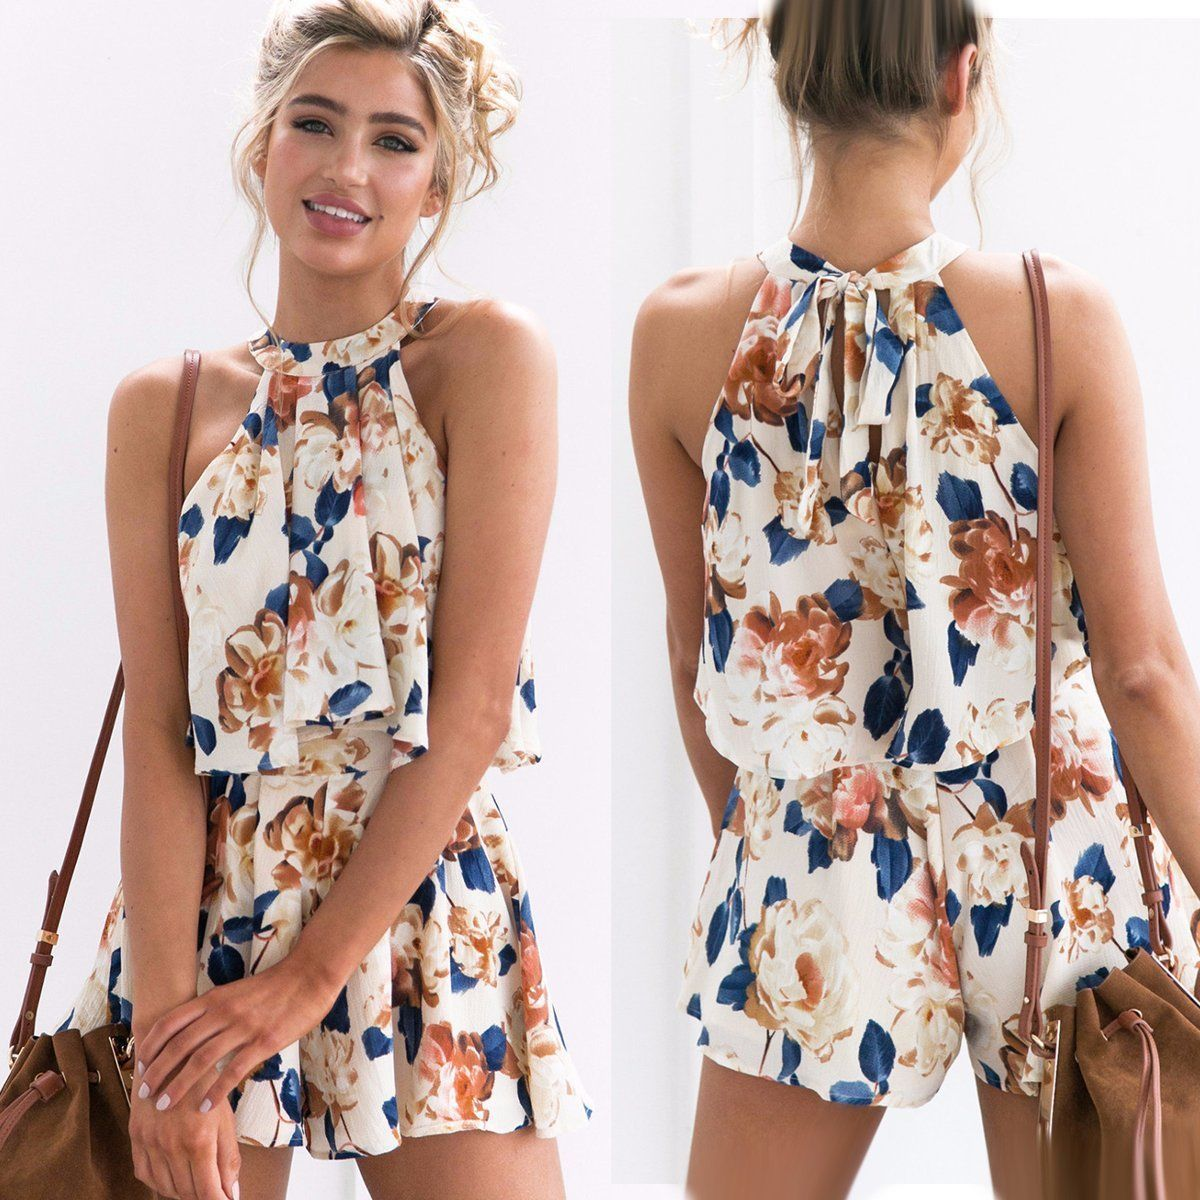 f731a216ebd9 Summer Womens Party Club Playsuit Rompers Beach Sun Dress Casual Jumpsuit  Shorts